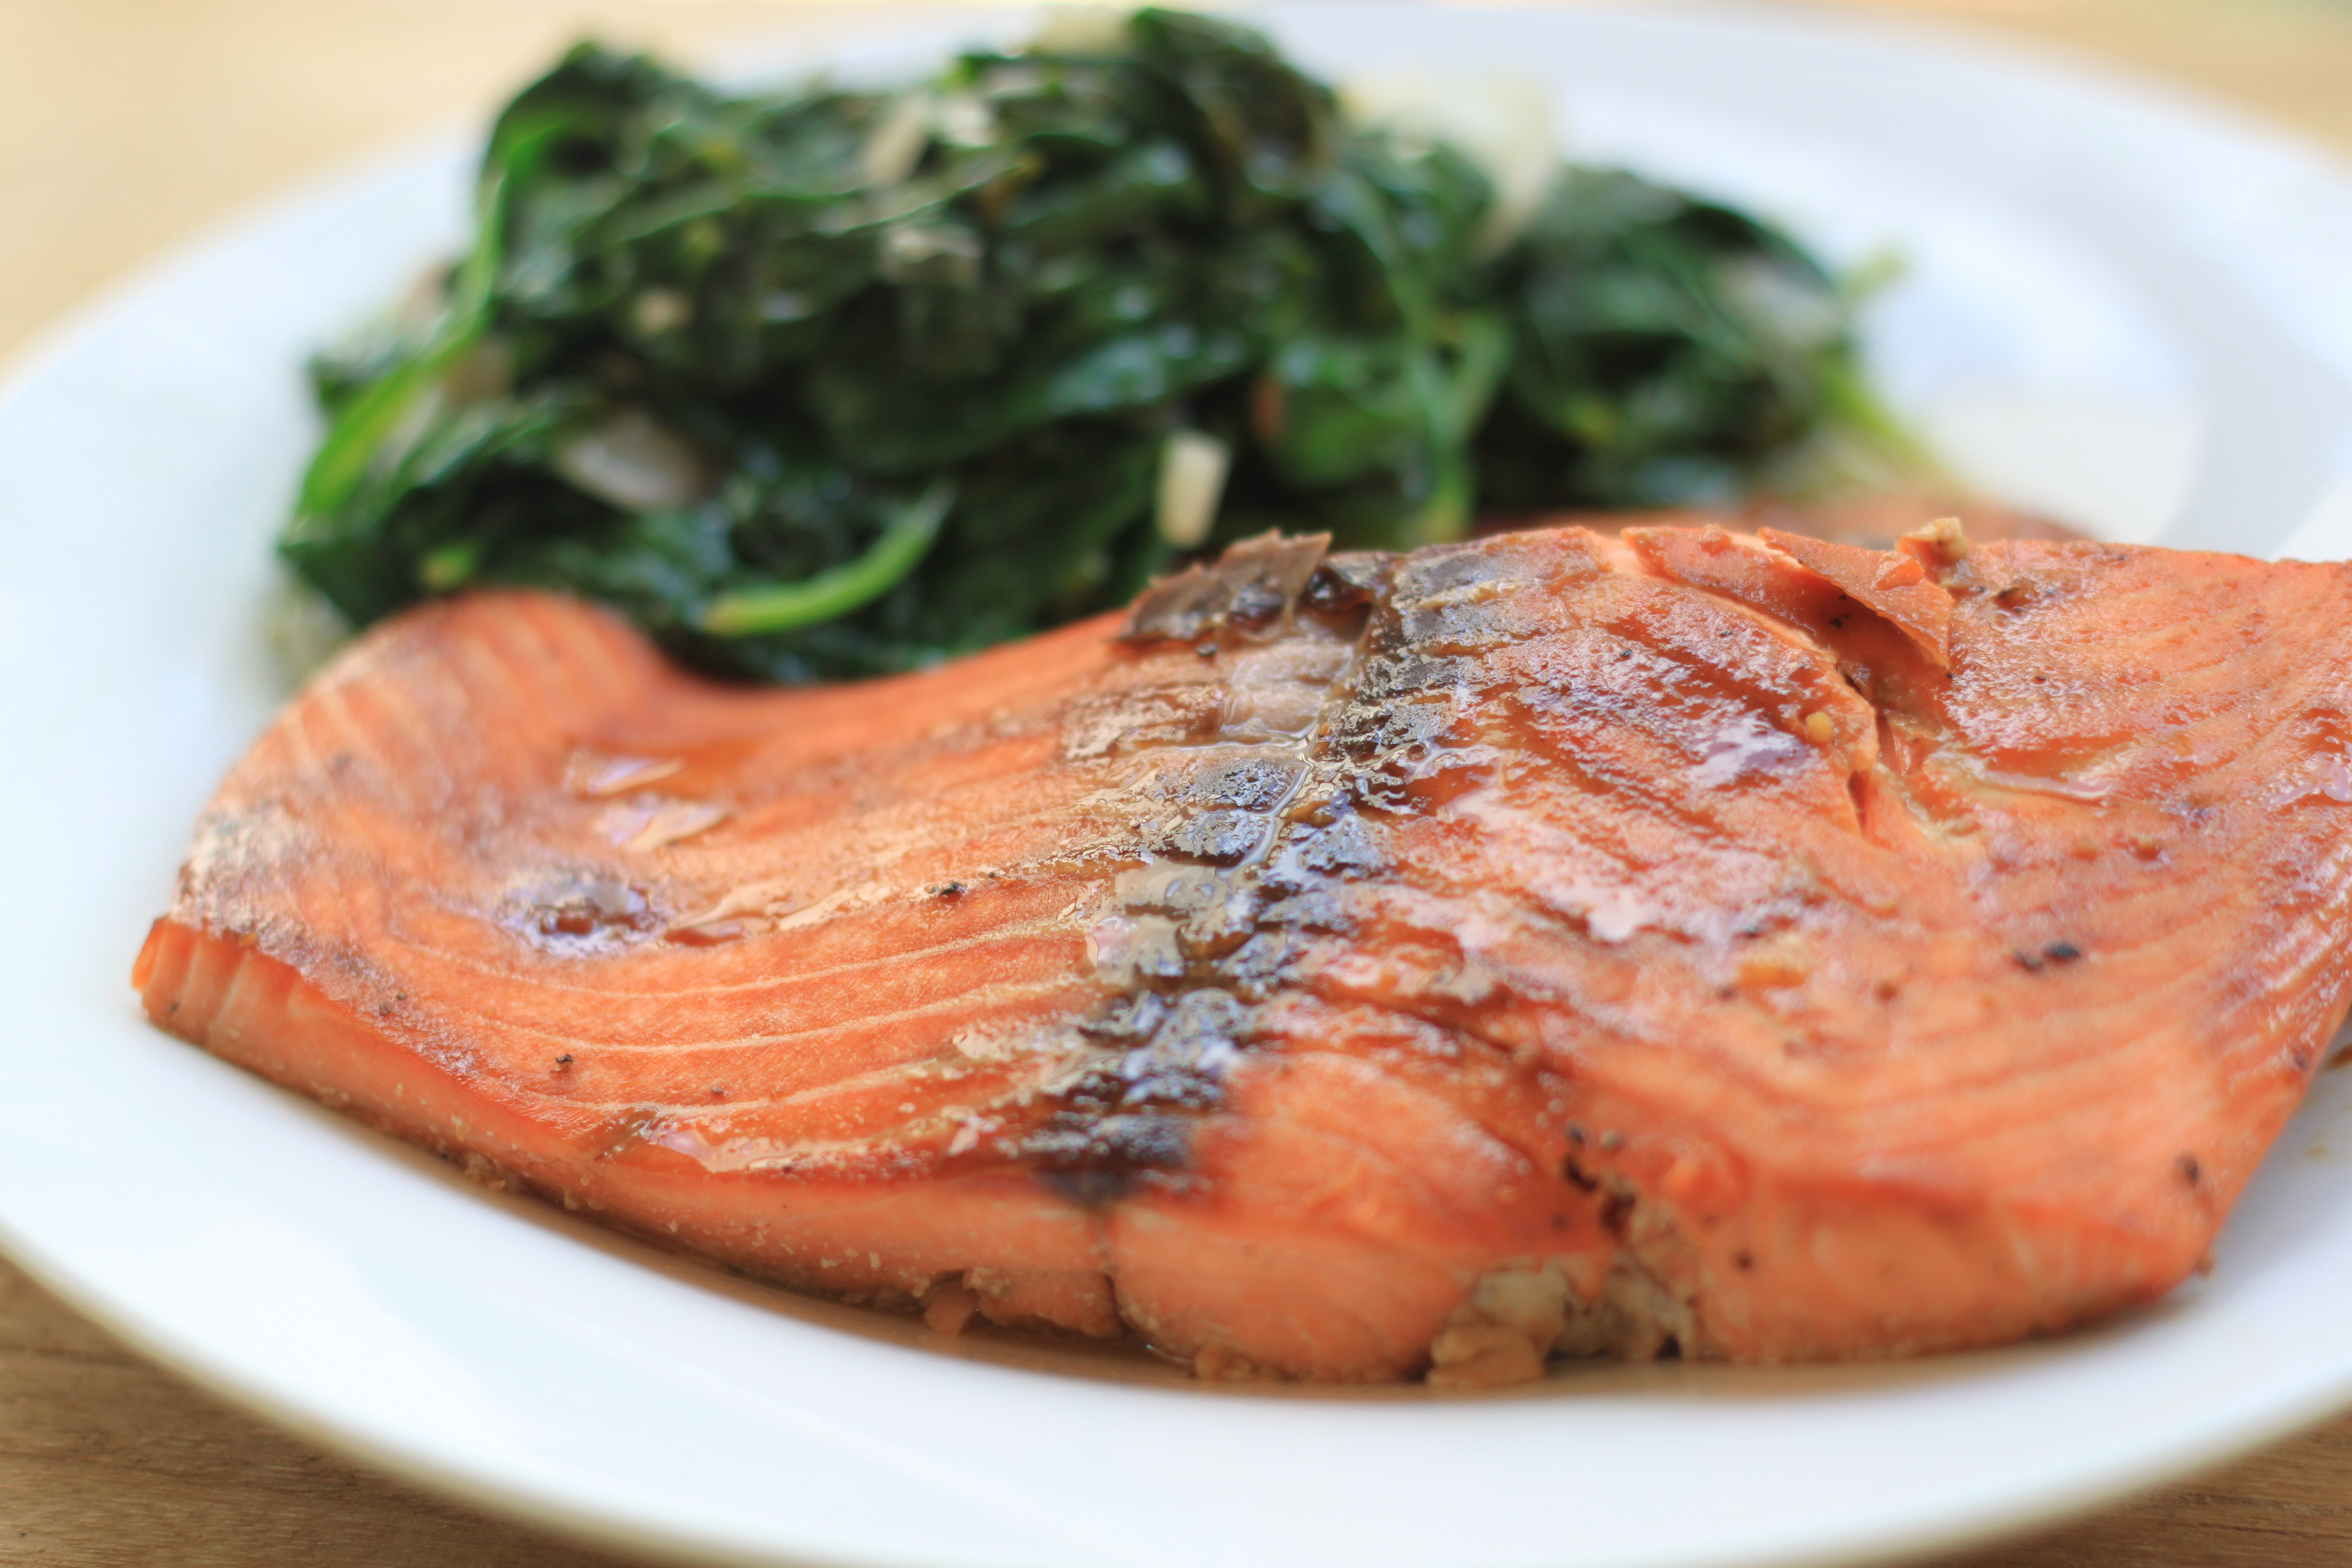 Miso-Glazed Salmon Filets for #SundaySupper – The Foodie Patootie